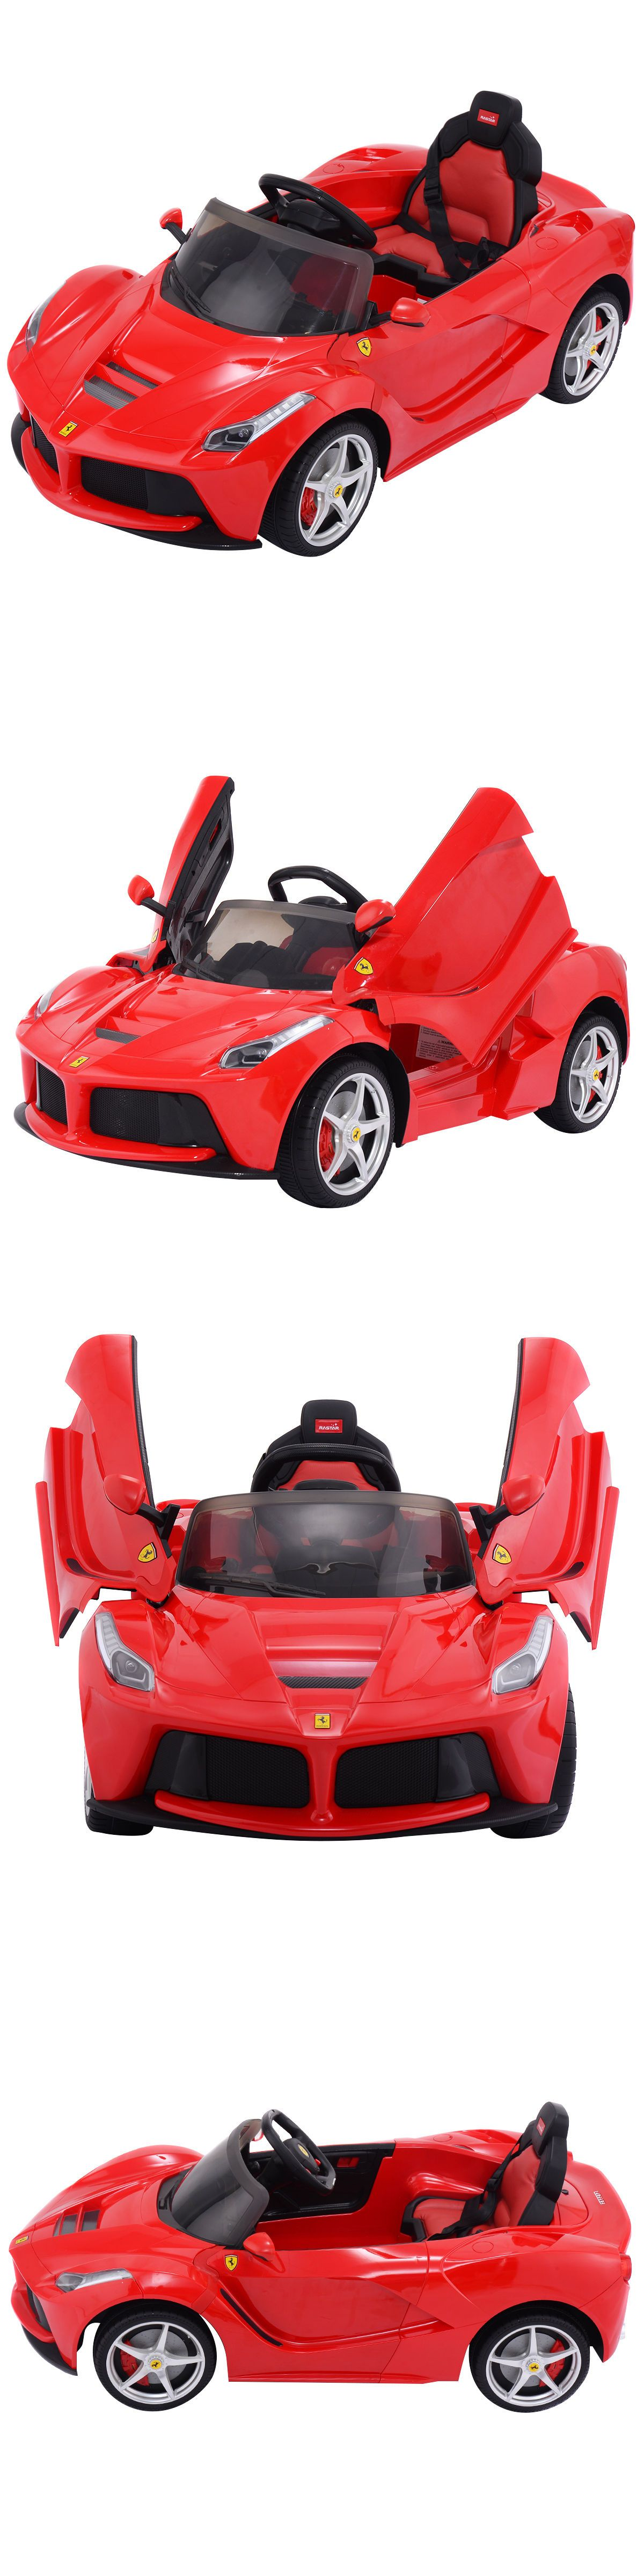 Toys car battery  Ride On Toys and Accessories  Laferrari V Kids Ride On Car